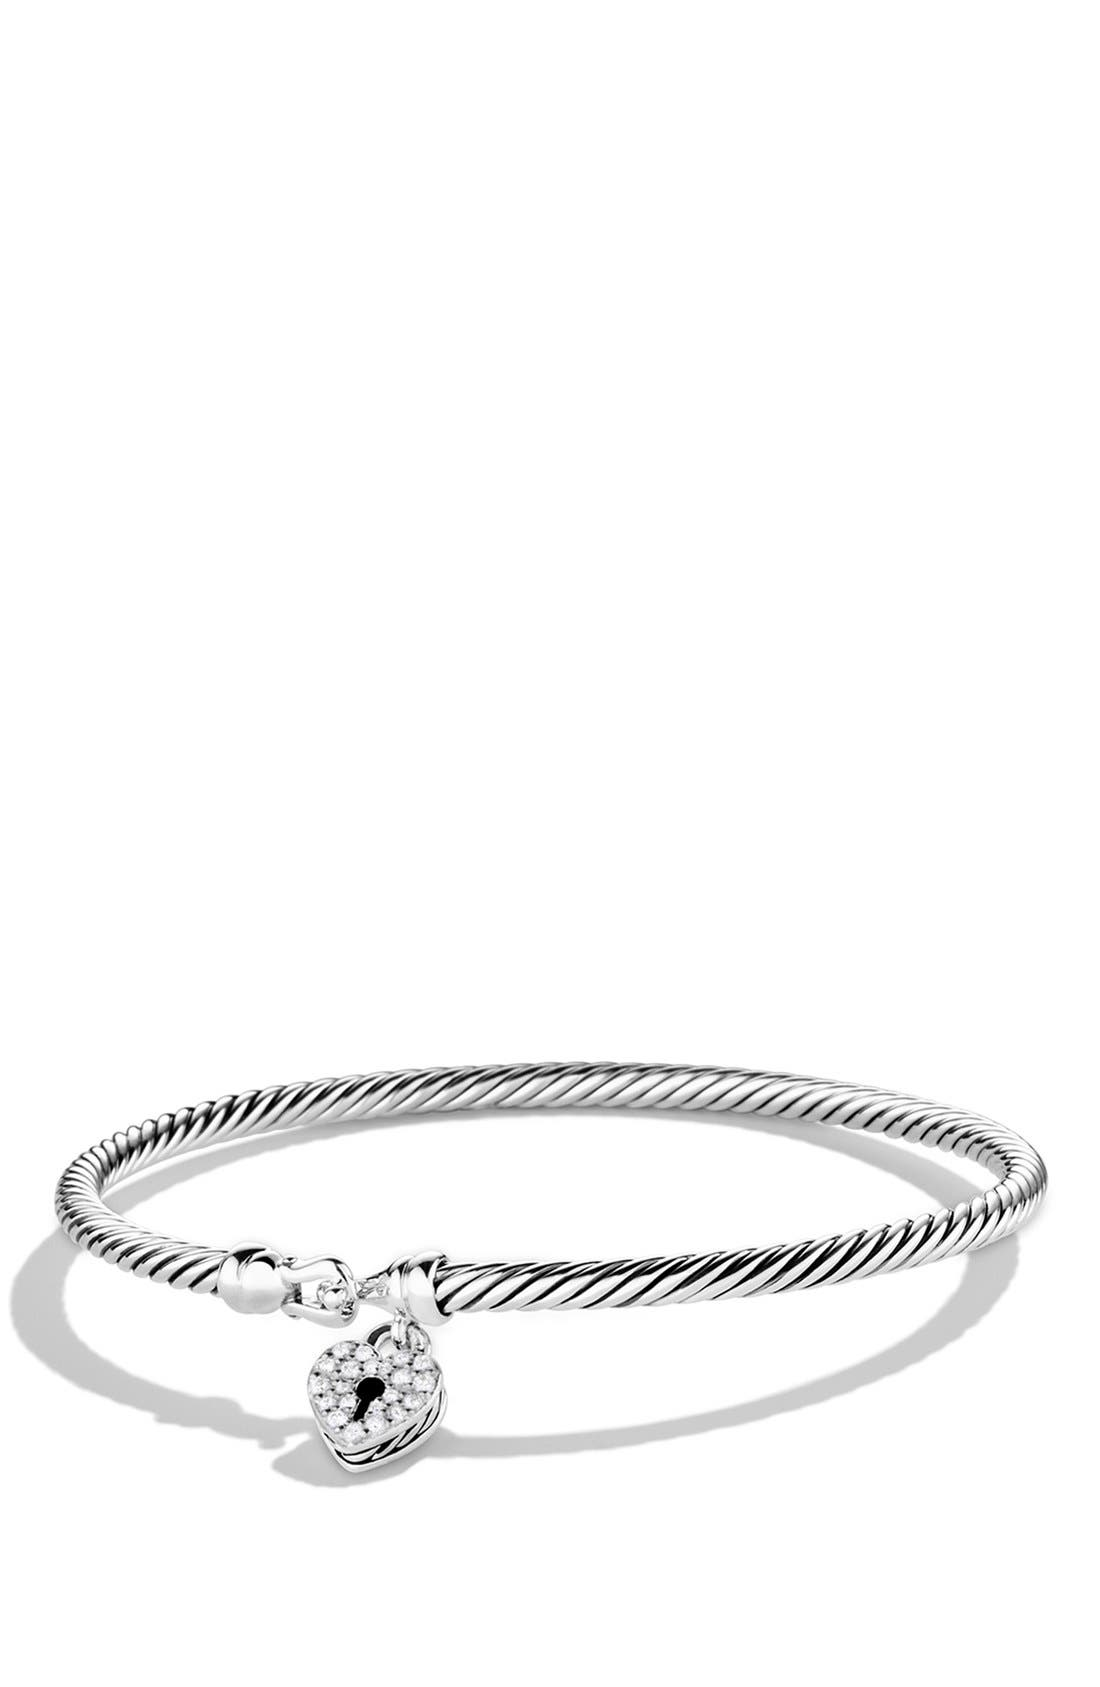 'Cable Collectibles' Heart Lock Bracelet with Diamonds,                             Main thumbnail 1, color,                             040